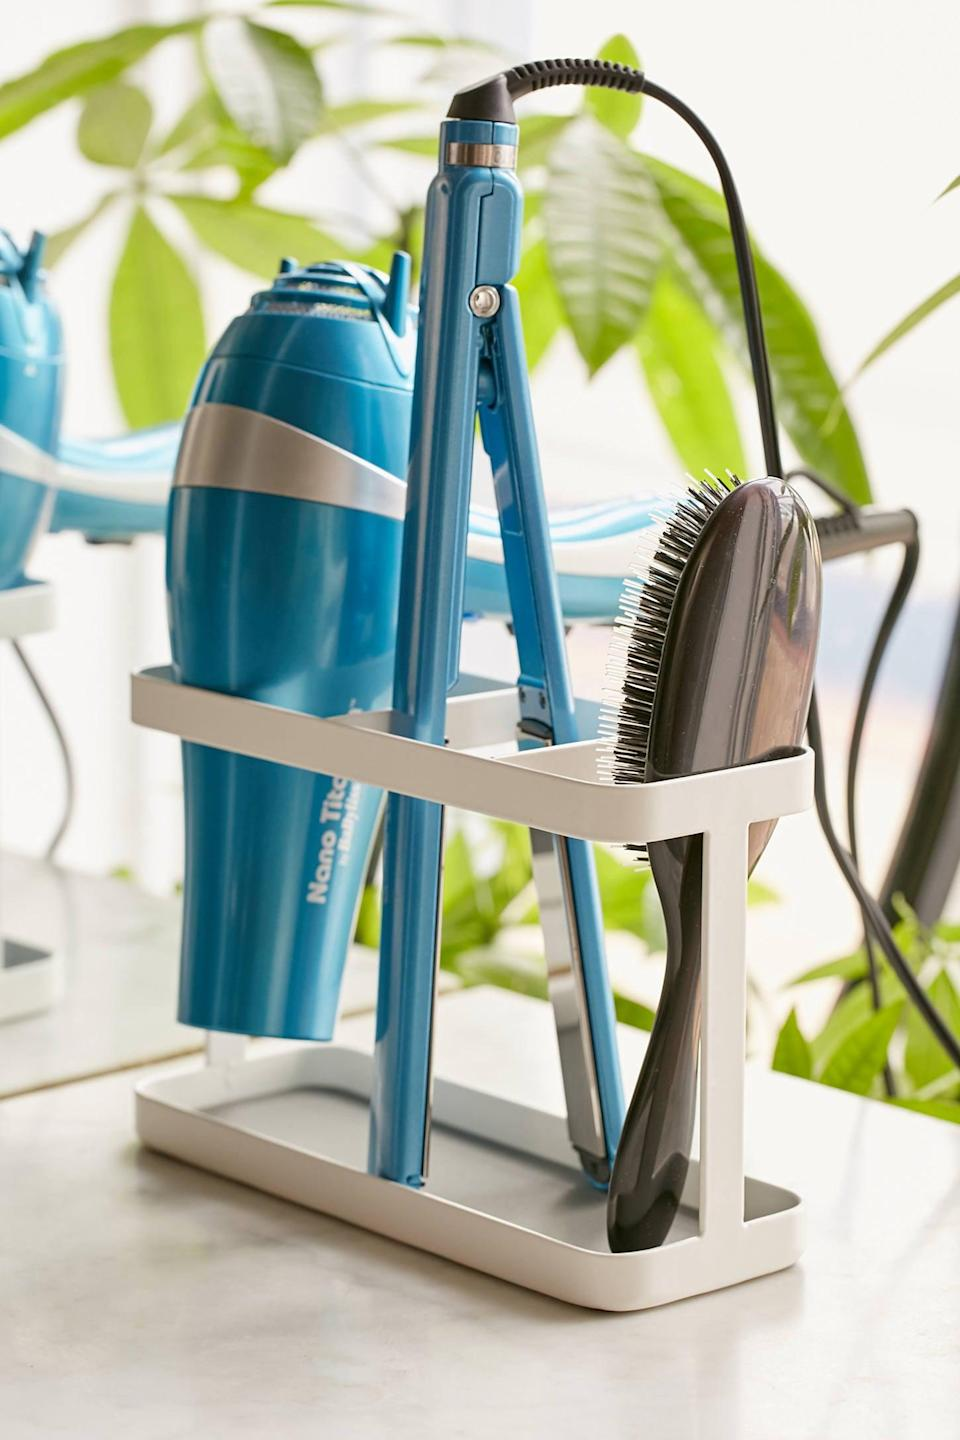 "<p>You'll never be able to live without this <a href=""https://www.popsugar.com/buy/Hair-Accessory-Organizer-432649?p_name=Hair%20Accessory%20Organizer&retailer=urbanoutfitters.com&pid=432649&price=44&evar1=casa%3Aus&evar9=47251564&evar98=https%3A%2F%2Fwww.popsugar.com%2Fhome%2Fphoto-gallery%2F47251564%2Fimage%2F47251623%2FHair-Accessory-Organizer&list1=cleaning%2Corganization%2Cspring%20cleaning%2Csmall%20space%20living%2Cbathrooms%2Chome%20organization&prop13=mobile&pdata=1"" class=""link rapid-noclick-resp"" rel=""nofollow noopener"" target=""_blank"" data-ylk=""slk:Hair Accessory Organizer"">Hair Accessory Organizer</a> ($44) again.</p>"